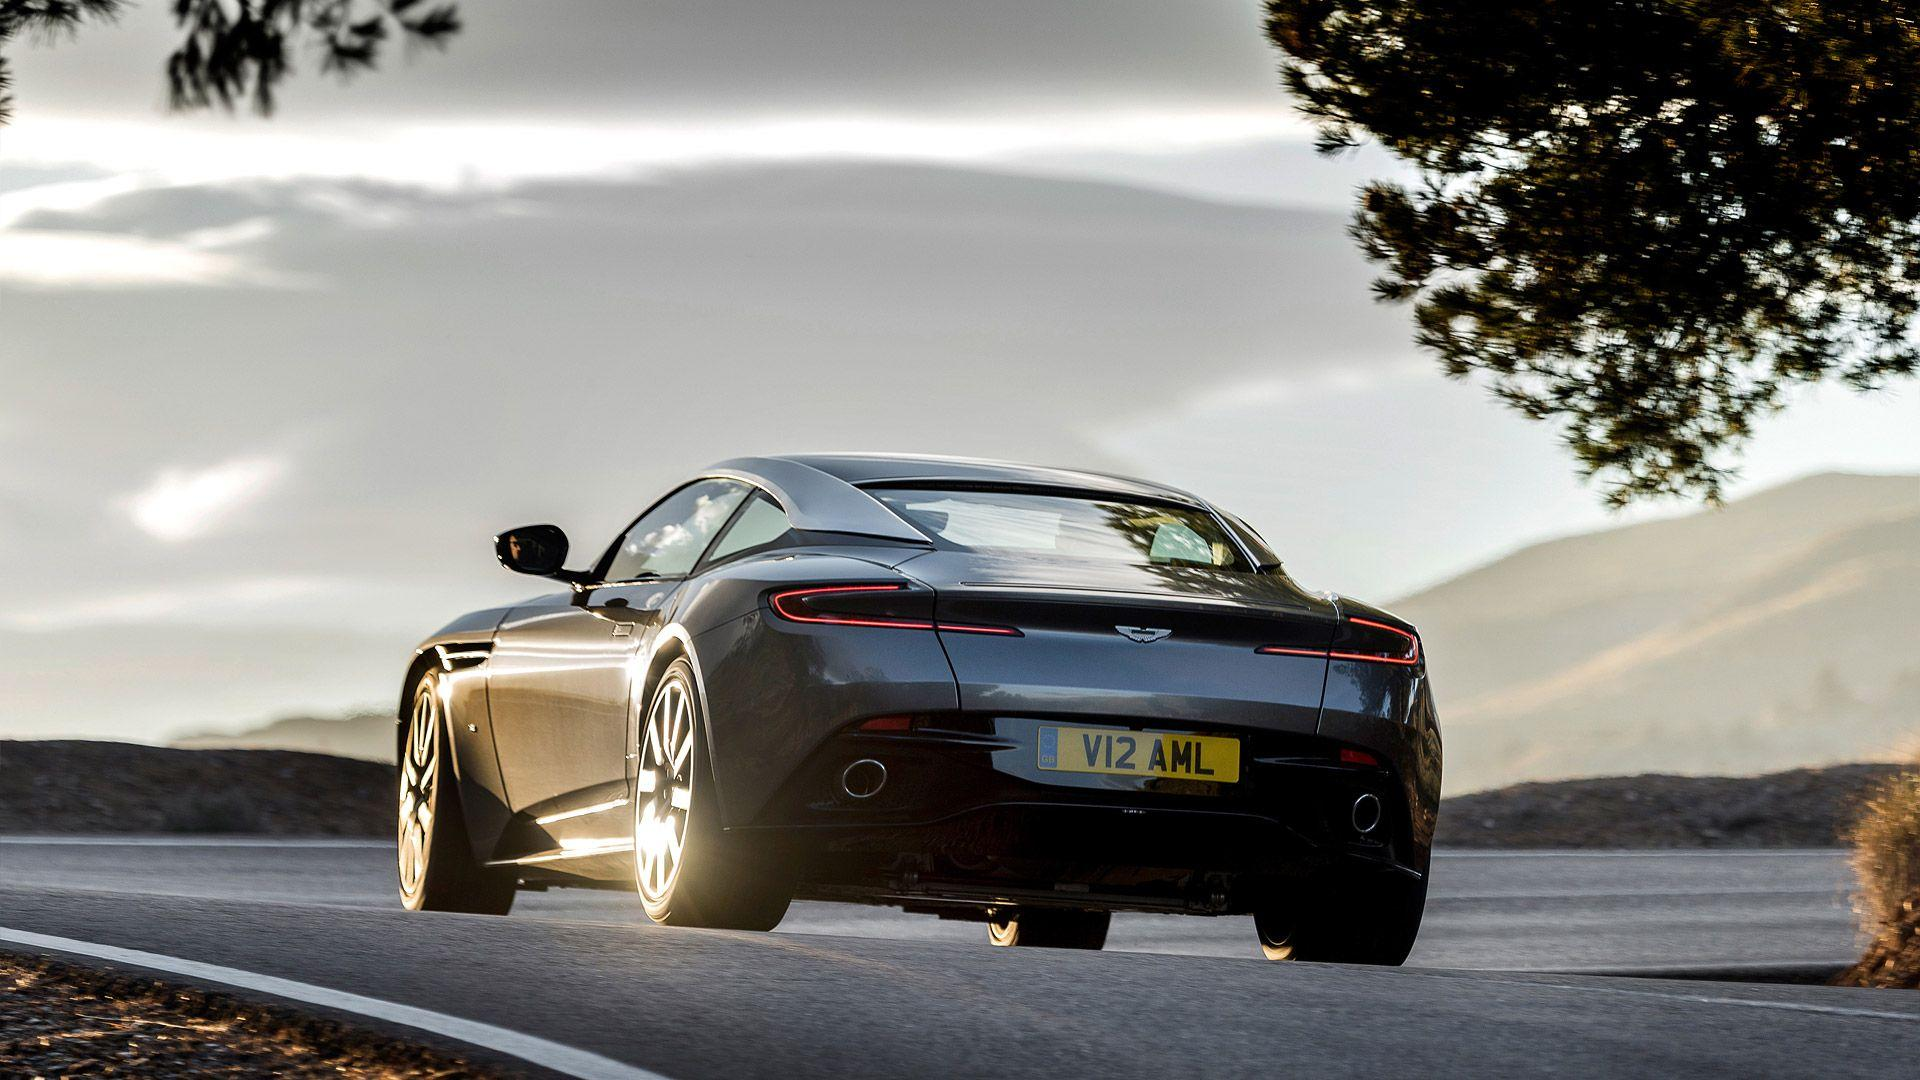 2017 Aston Martin DB11 Wallpapers & HD Images - WSupercars